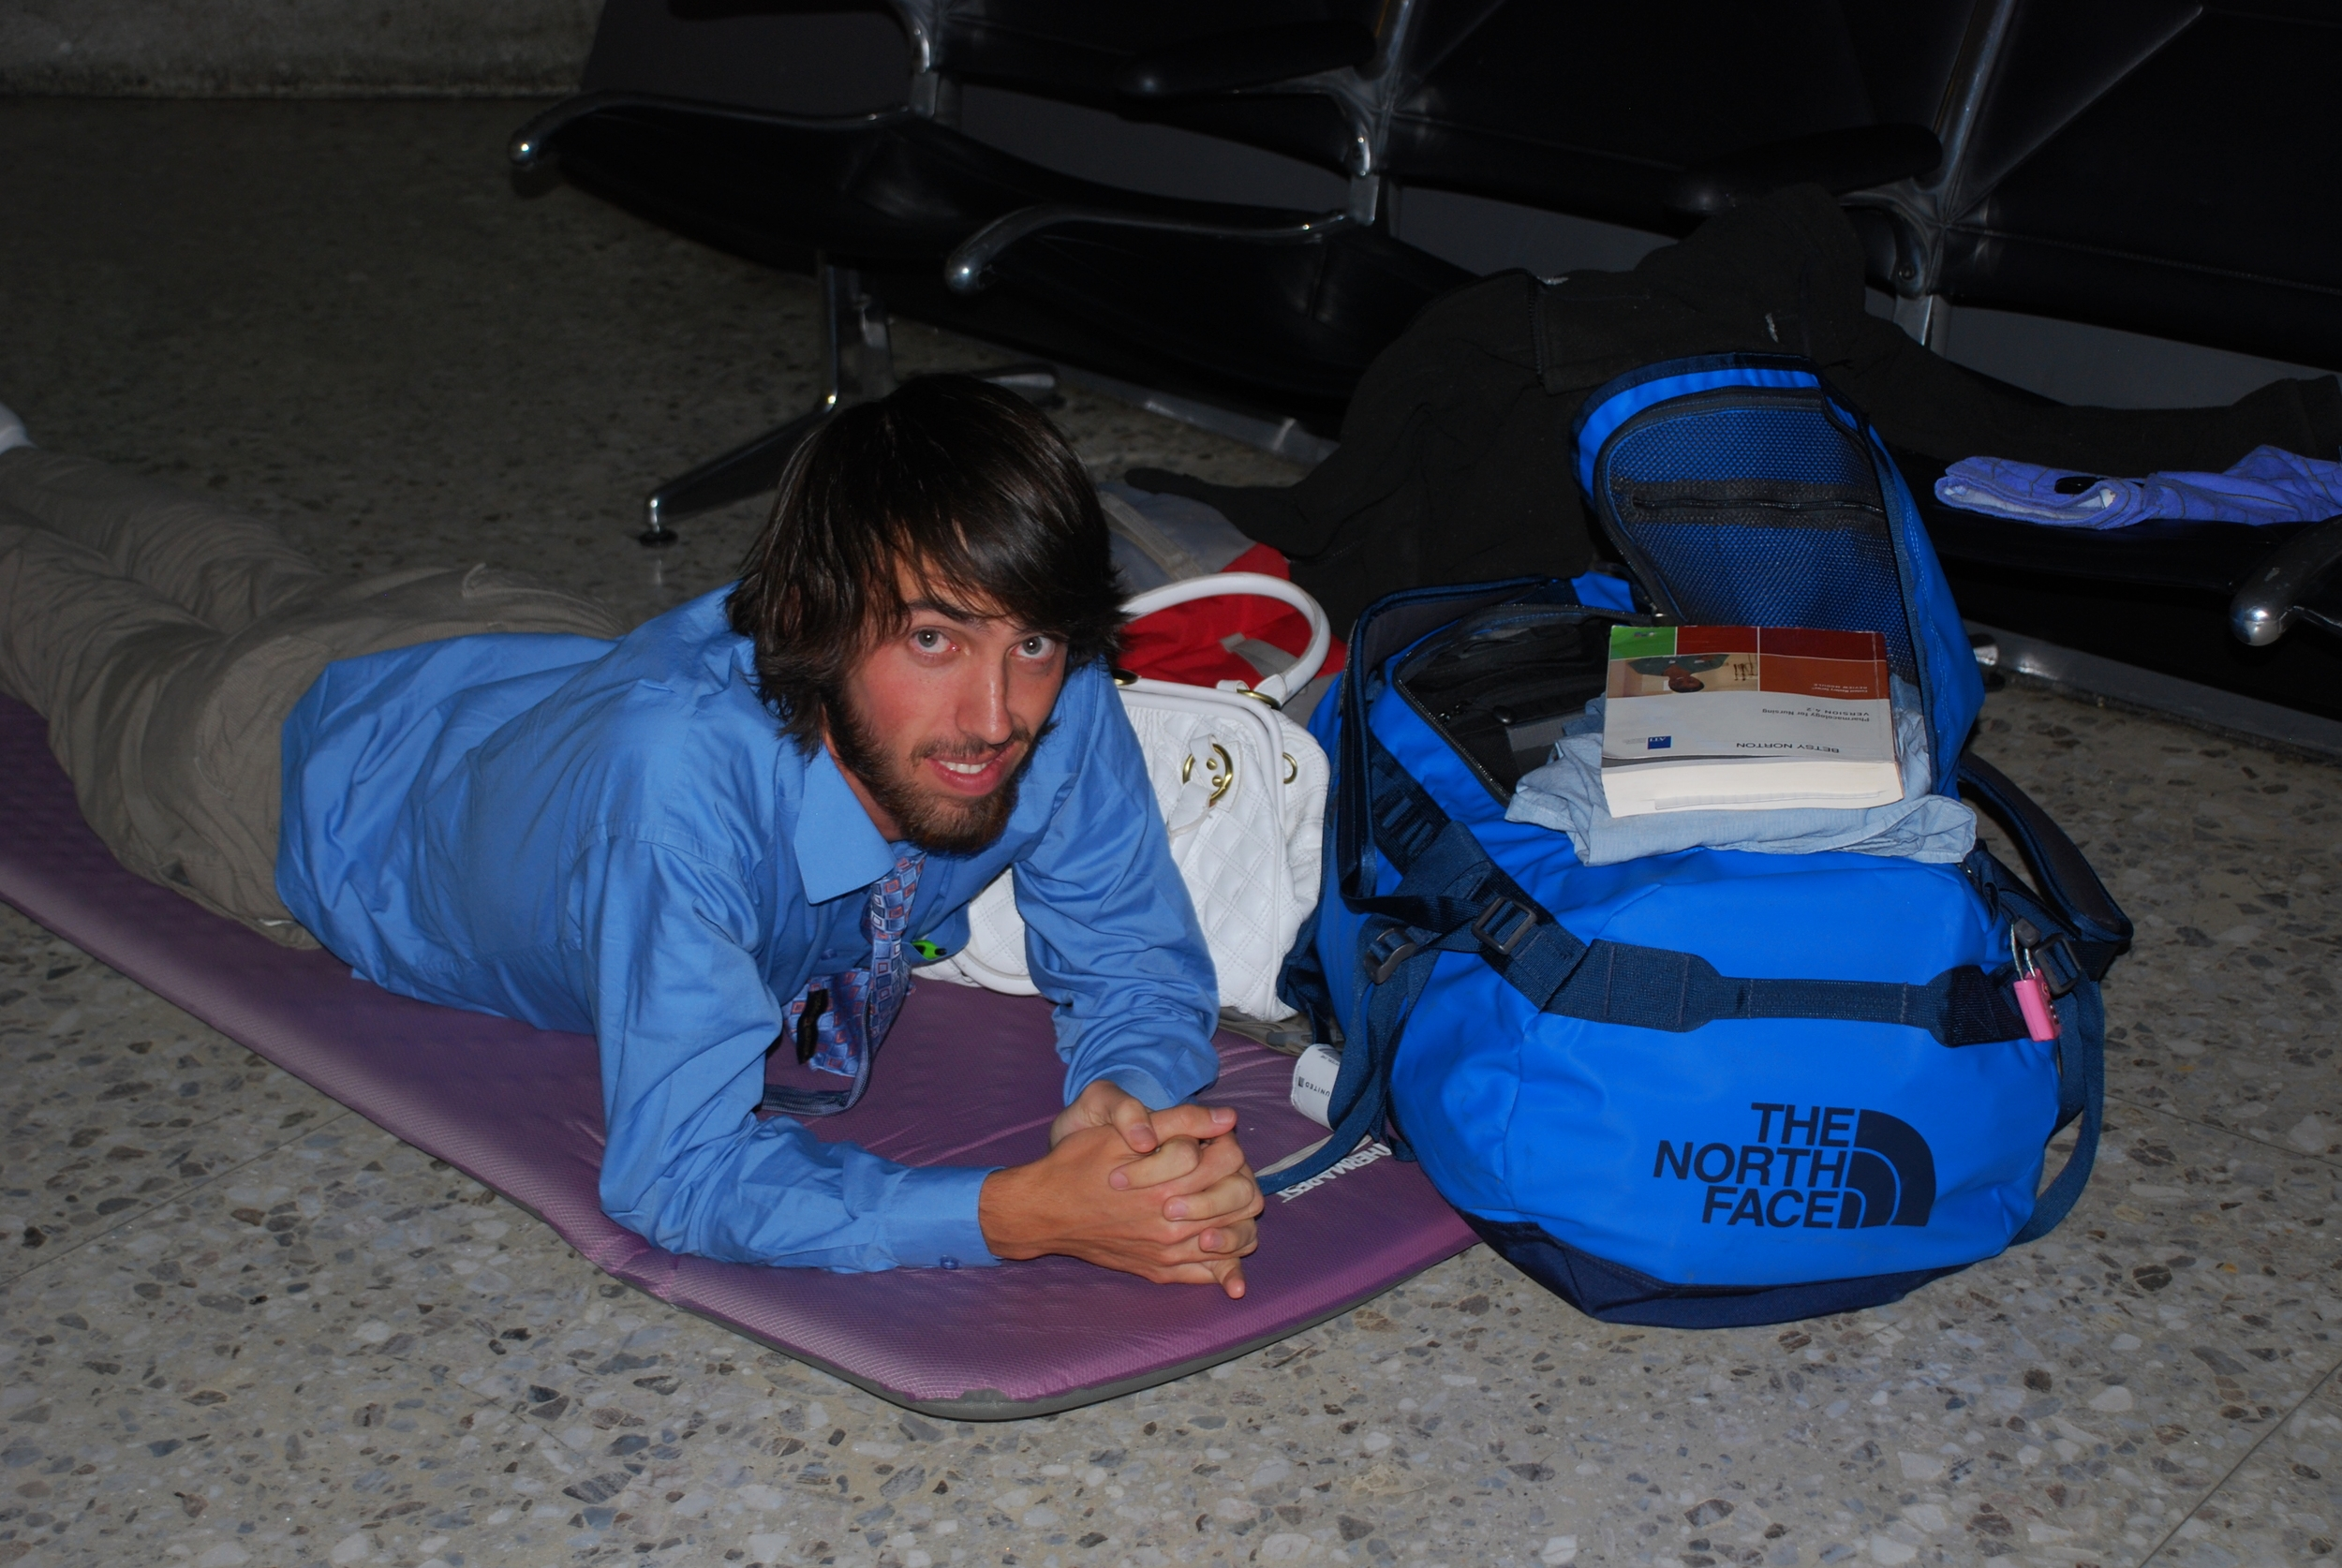 Sleeping on the floor in D.C. during a long layover on our way to Africa.